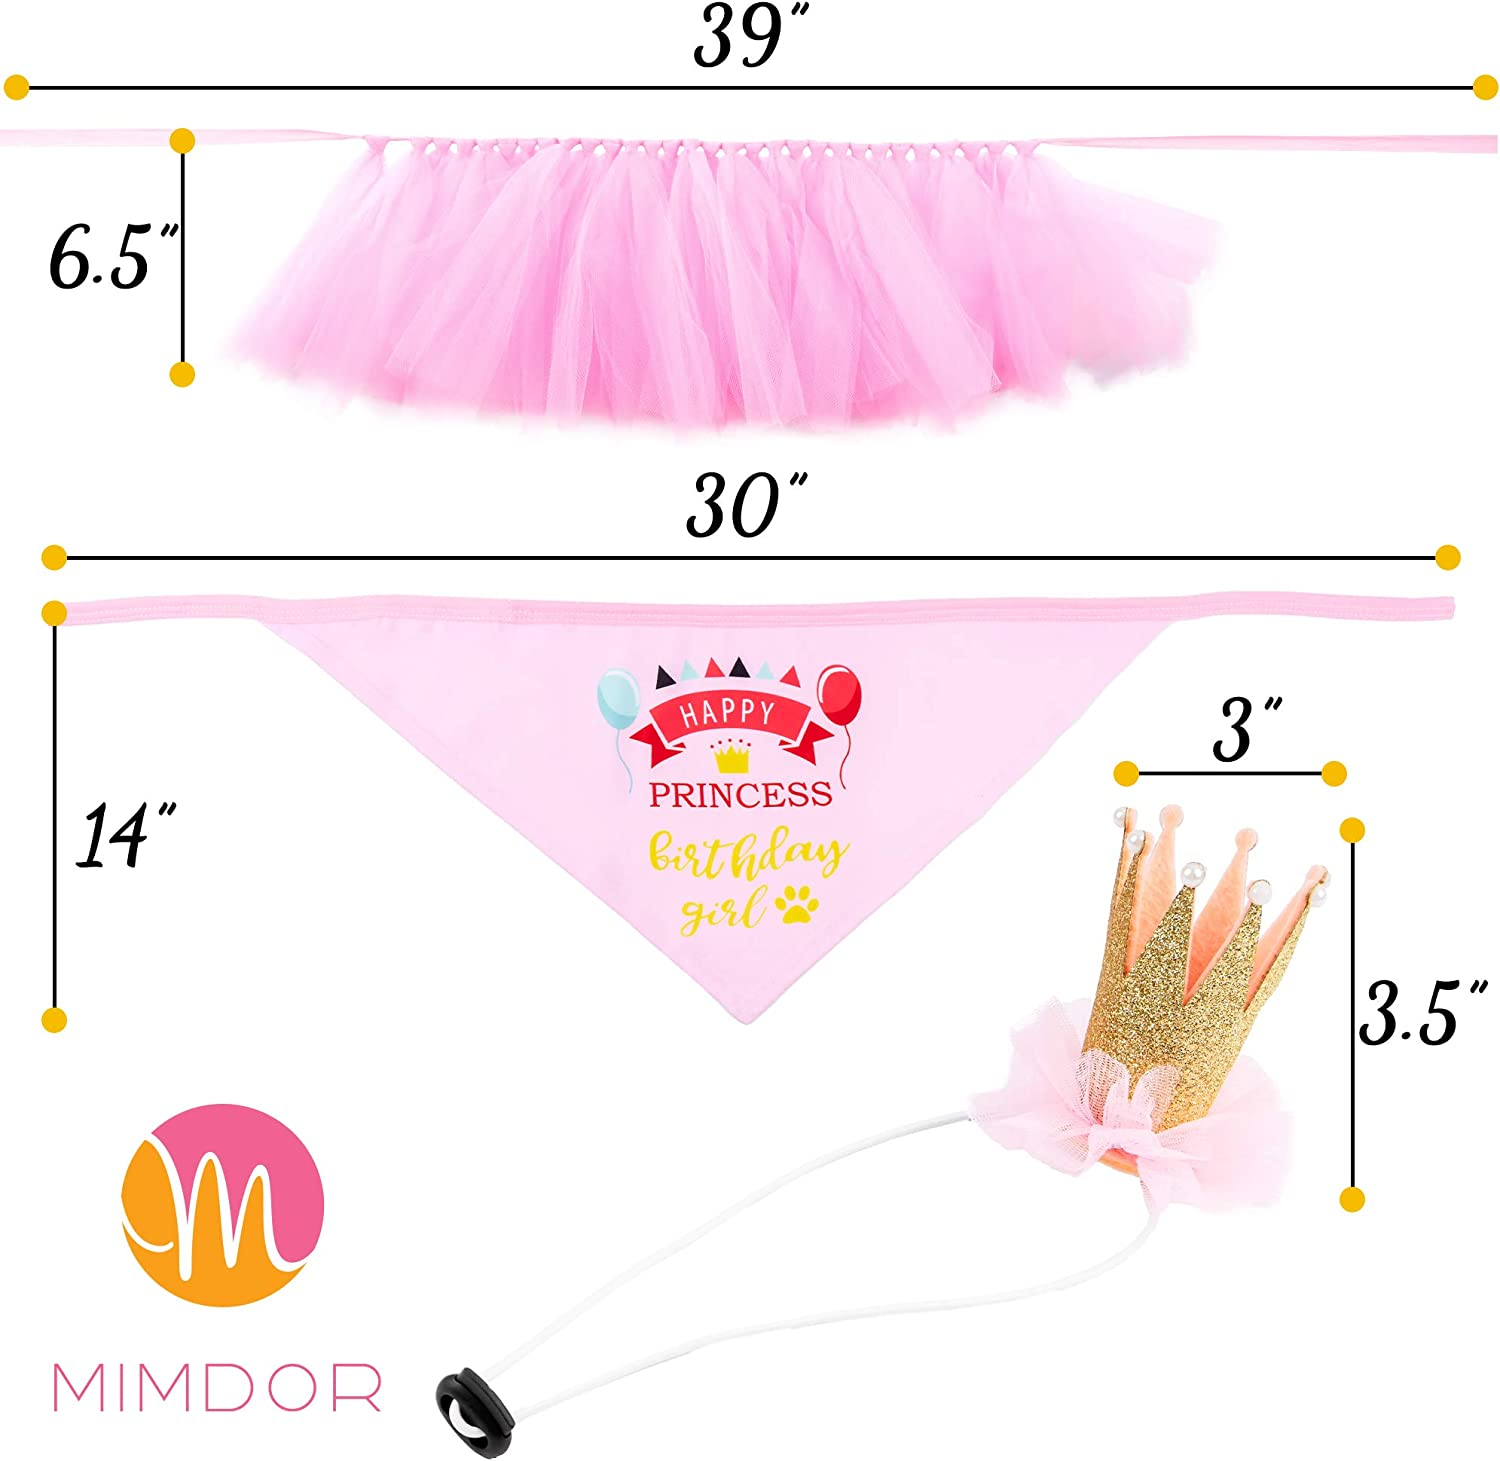 Cute Puppy Girl Gifts Happy Birthday and Lets Pawty Banners Pink Outfit Tutu Skirt Dress Glittery Pink Tulle Crown Colorful Doggy Bandana for Dogs Mimdor Dog Birthday Party Supplies Decorations